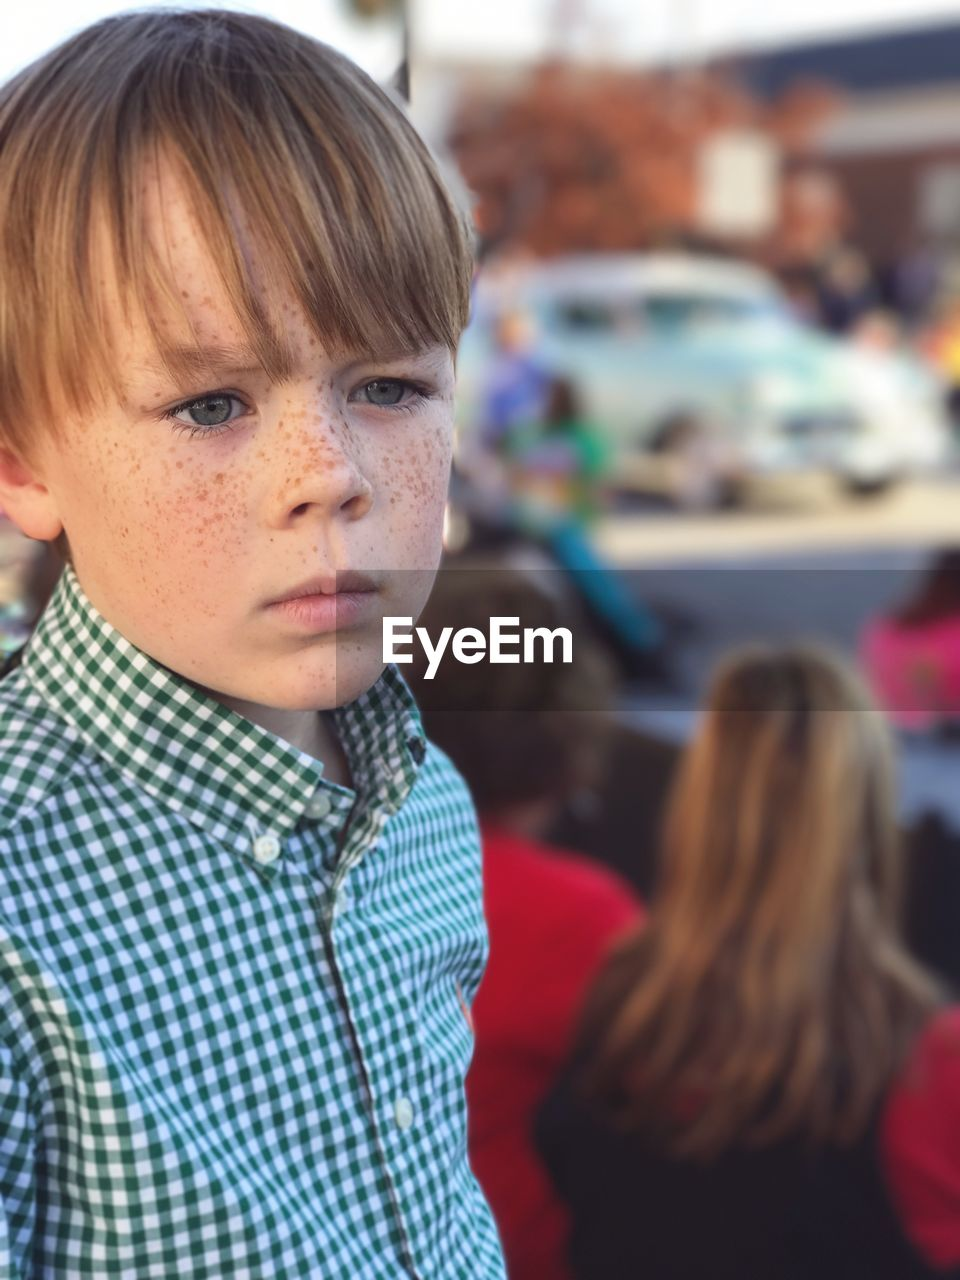 child, childhood, males, boys, men, portrait, real people, headshot, incidental people, focus on foreground, lifestyles, people, looking, innocence, females, casual clothing, leisure activity, contemplation, hairstyle, bangs